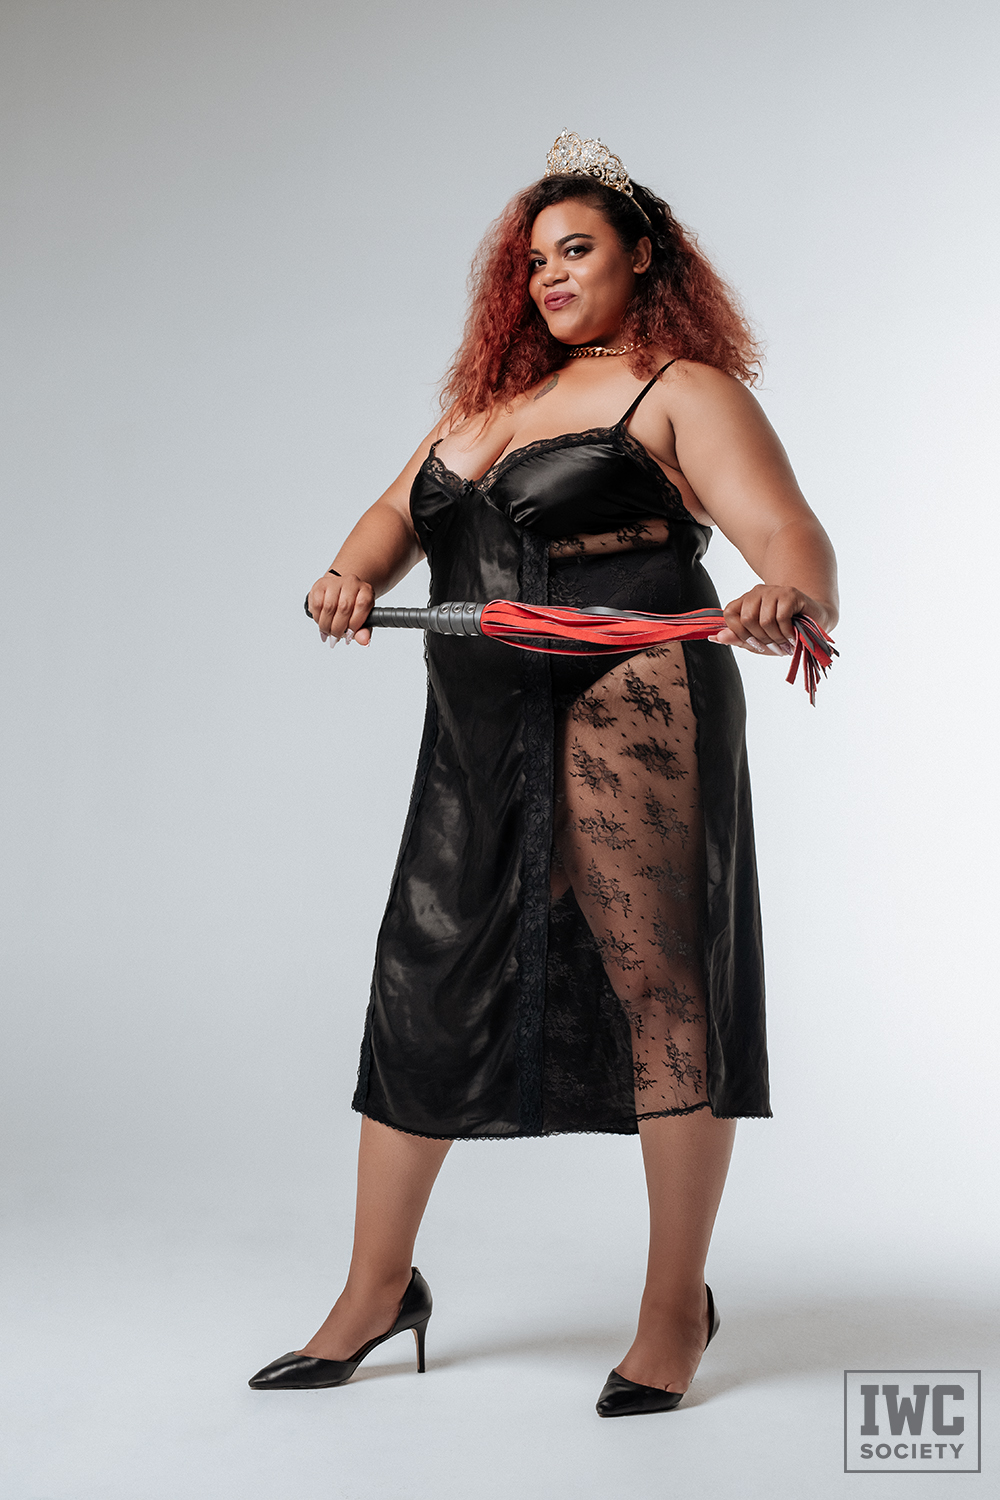 bbw femdom Ms Charmness in a black nightie and tiara holding a red flogger